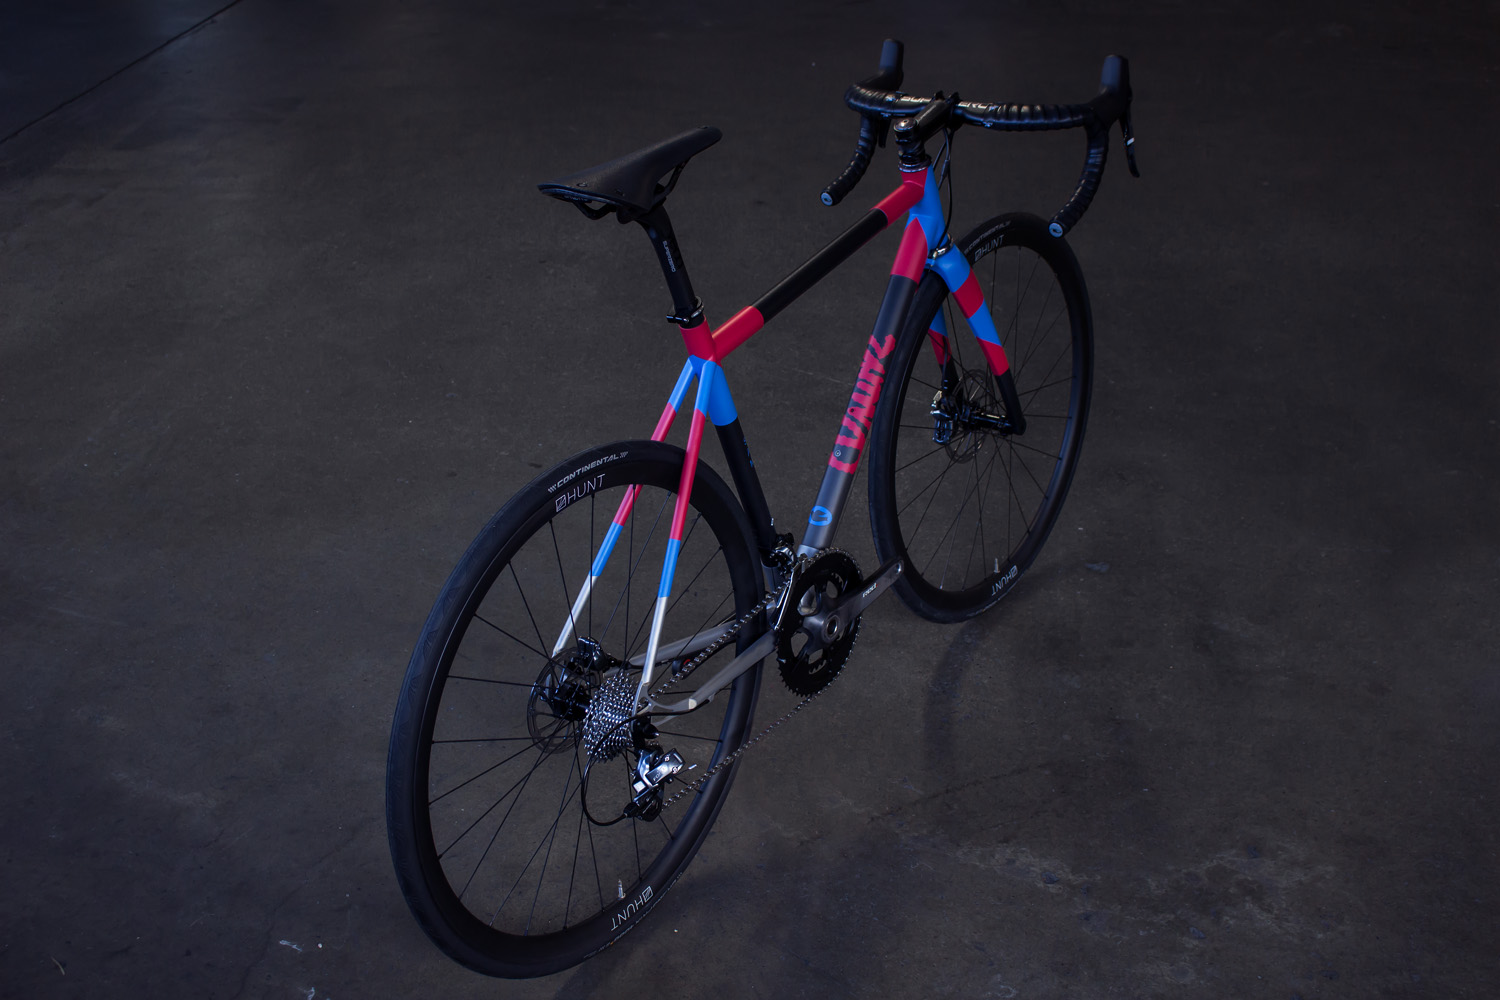 quirk_cycles_stainless_carbon_climber_road_JPEG_0006.jpg